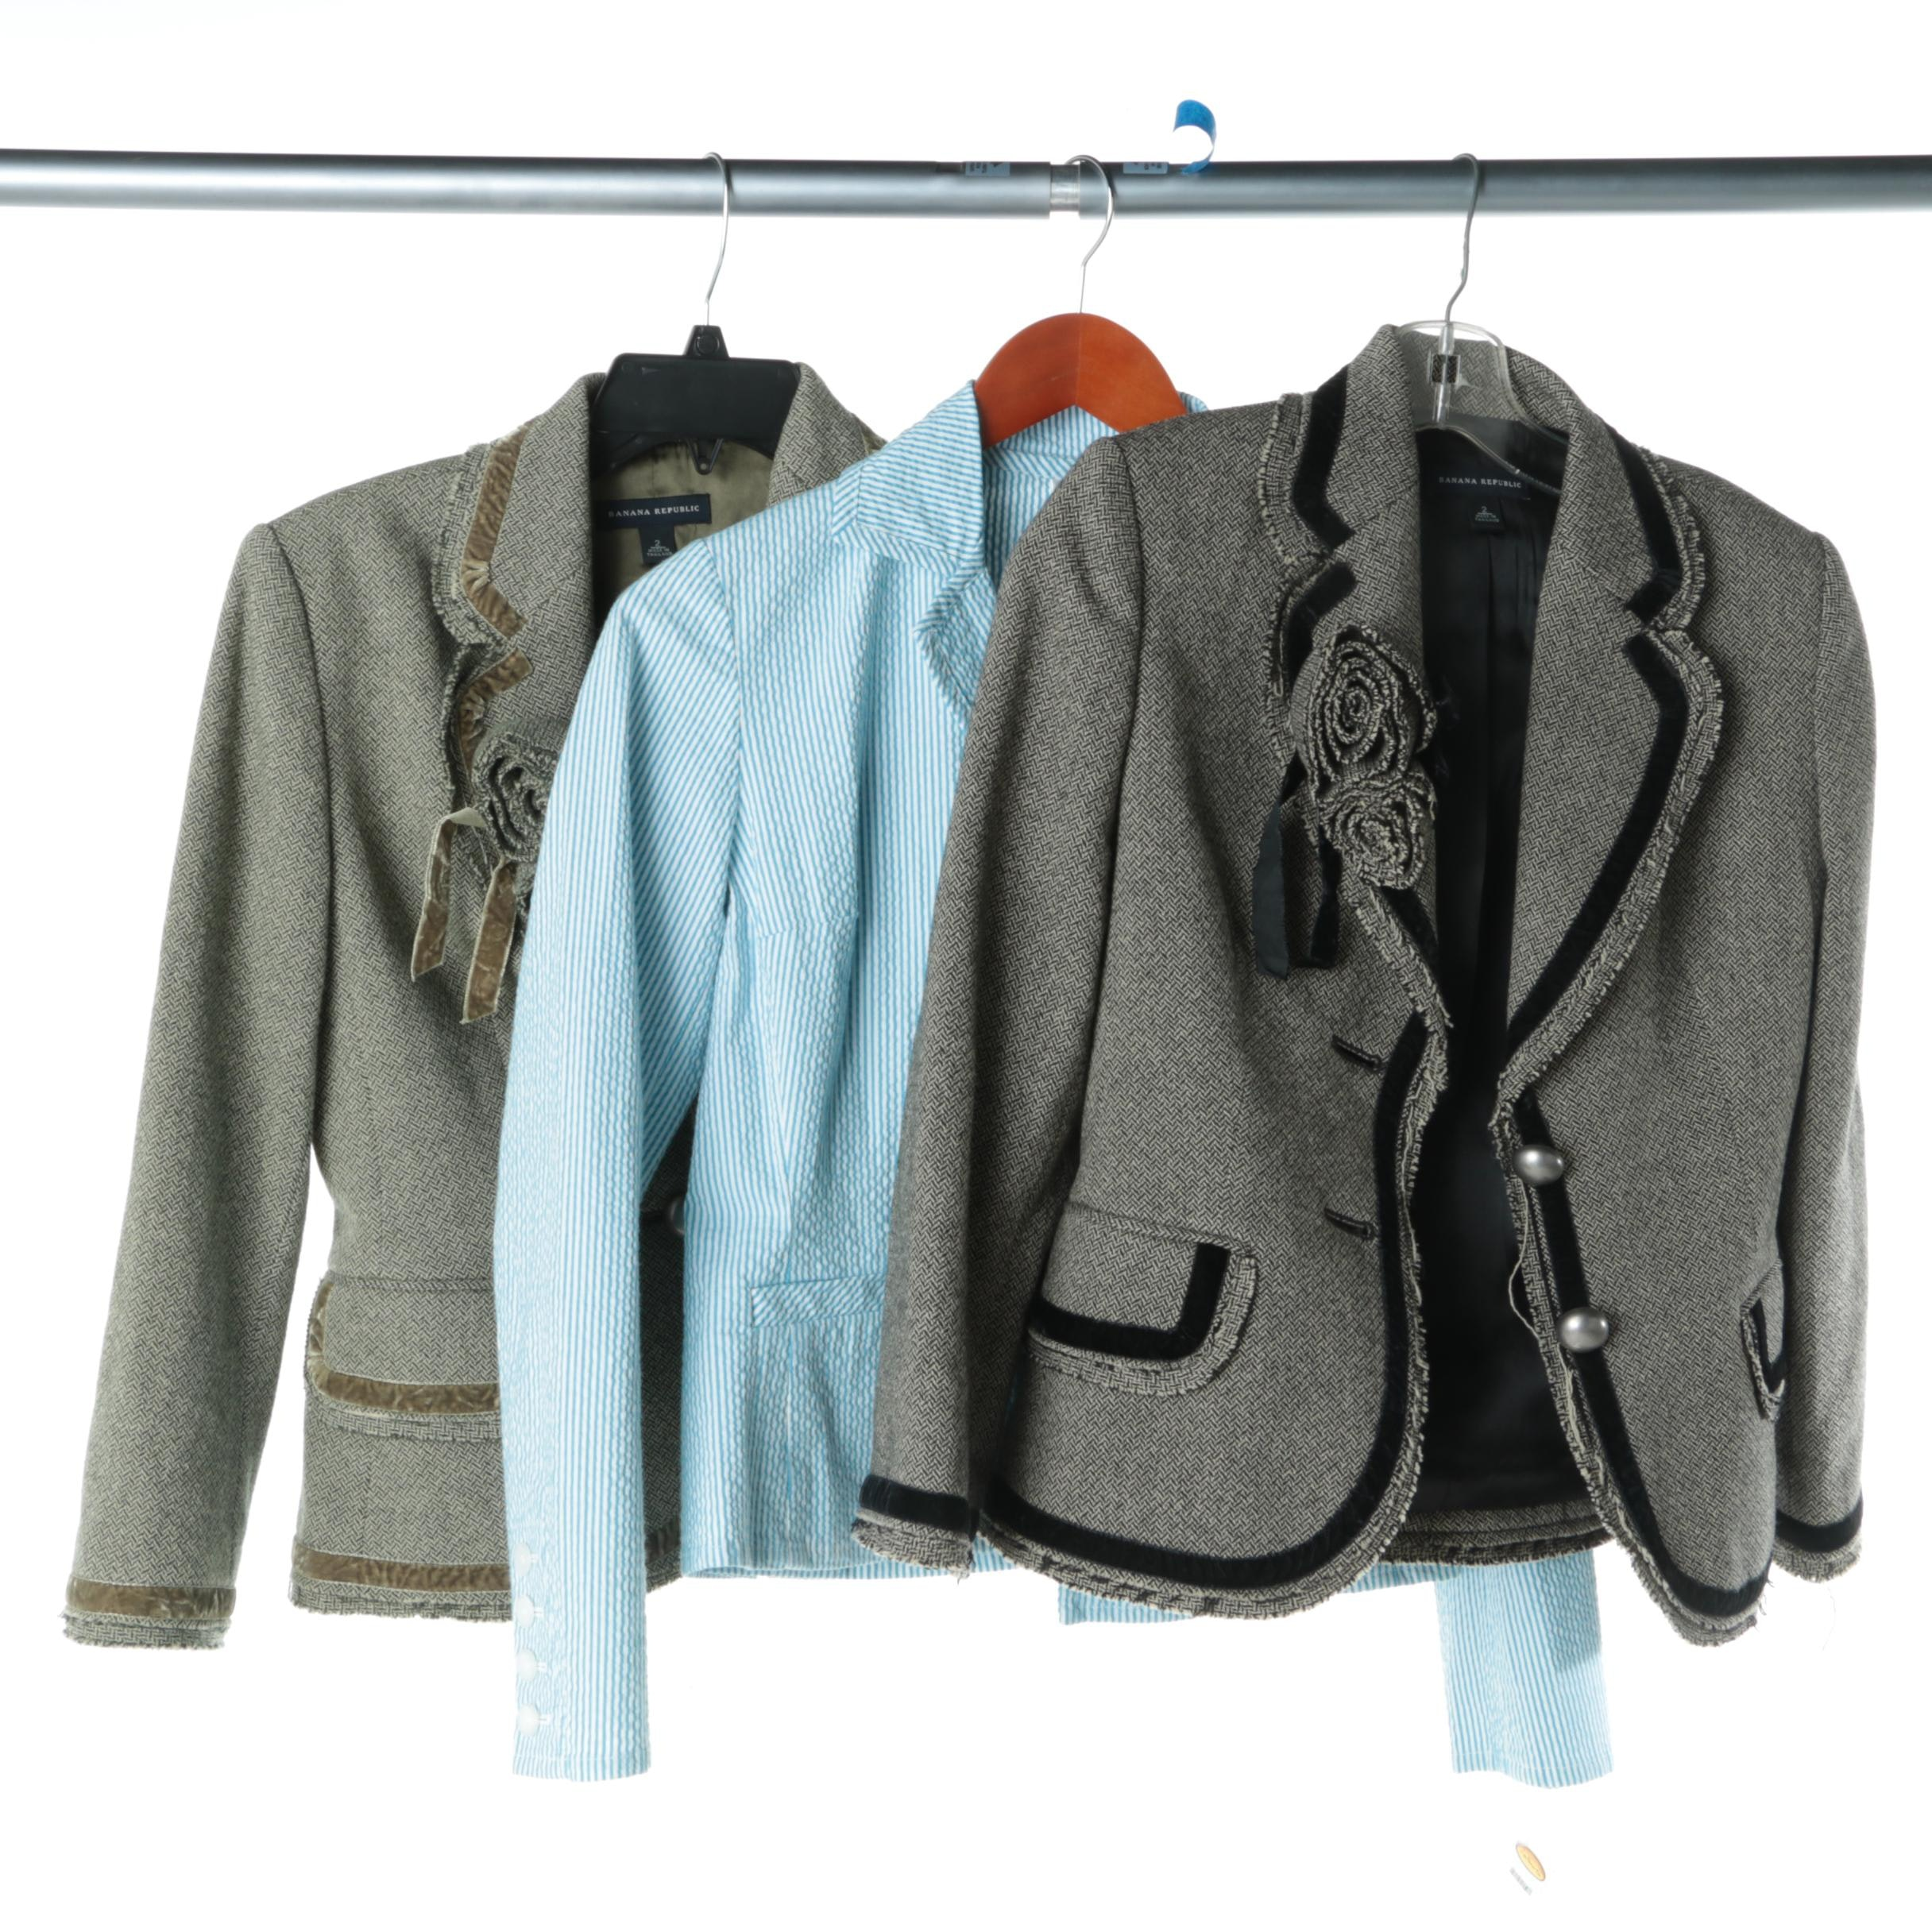 Women's Suit Jackets Including Banana Republic